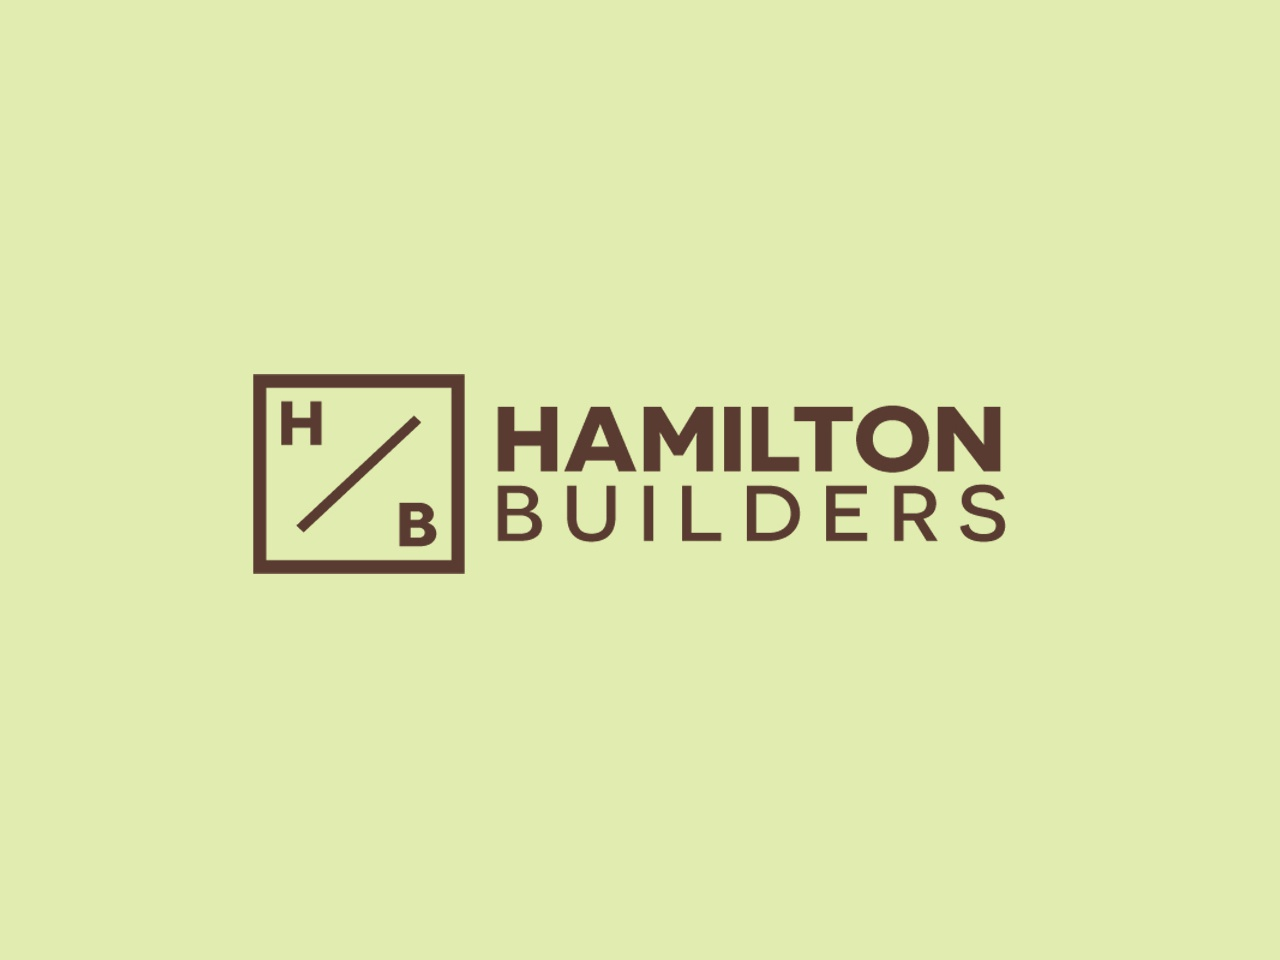 Hamilton Builders web app icon ux ui template vector brand display handcrafted monogram logo builders square simple minimalist design label branding typography logo